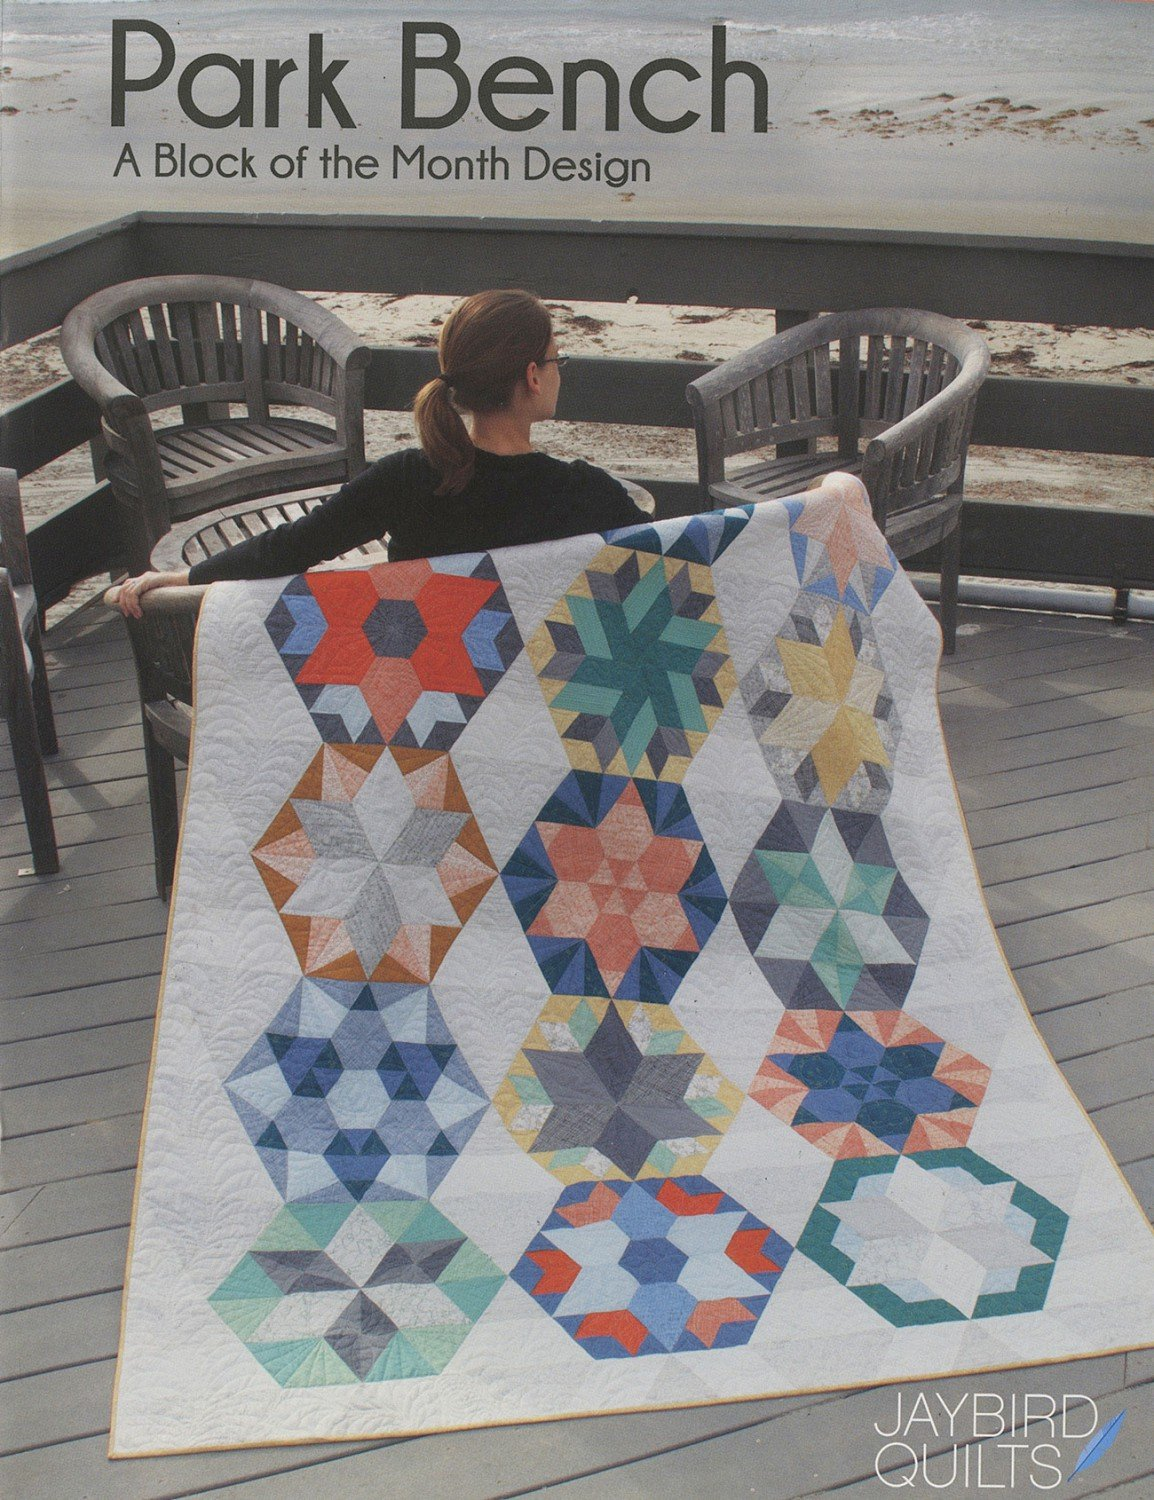 PARK BENCH / JAYBIRD QUILTS